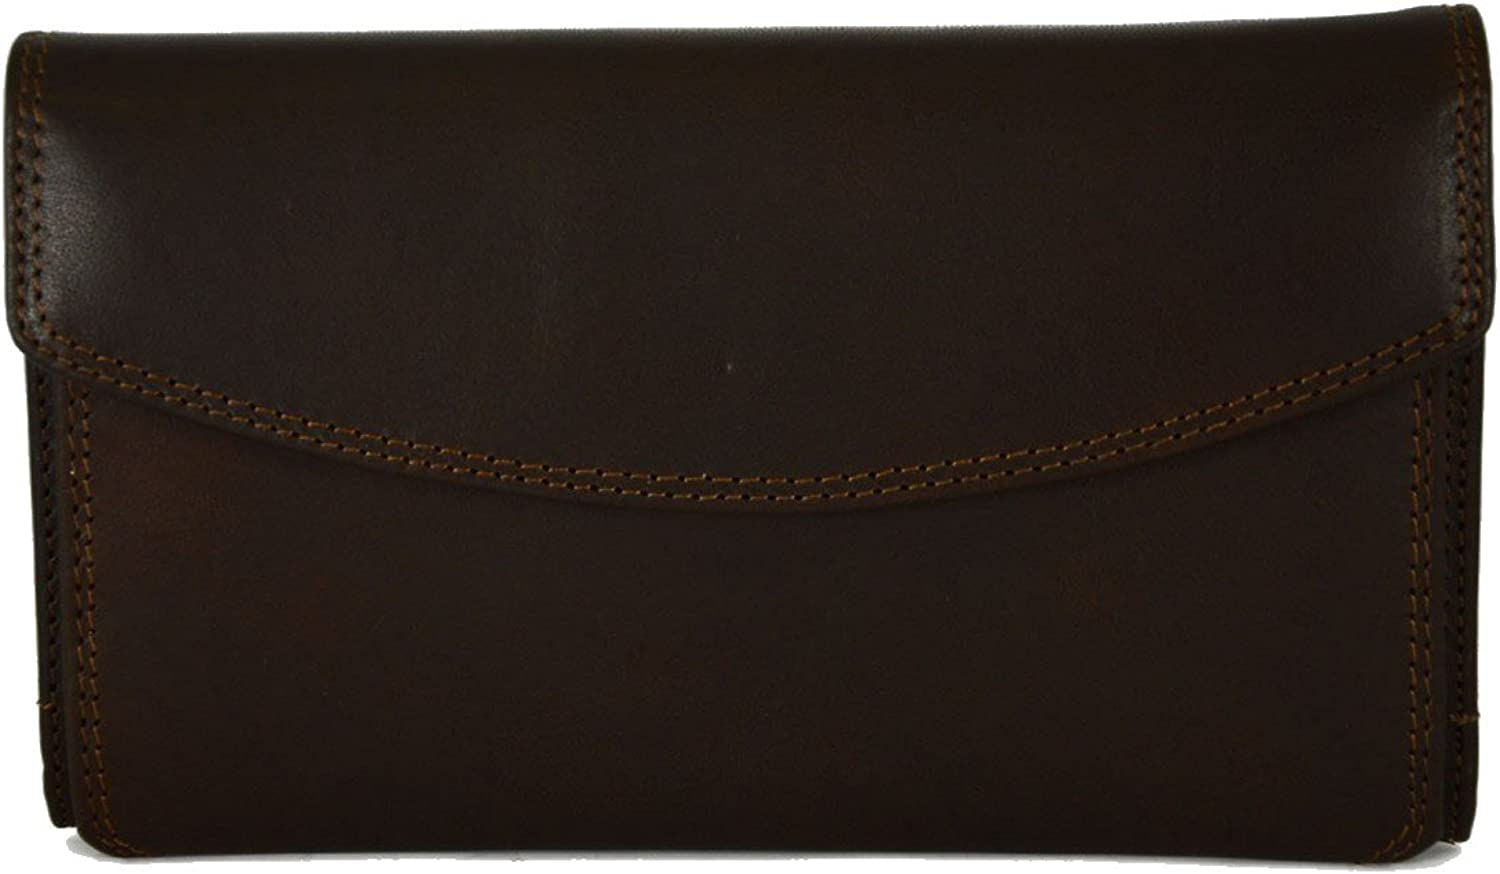 Genuine Leather Multicompartment Wallet For Woman color Dark Brown